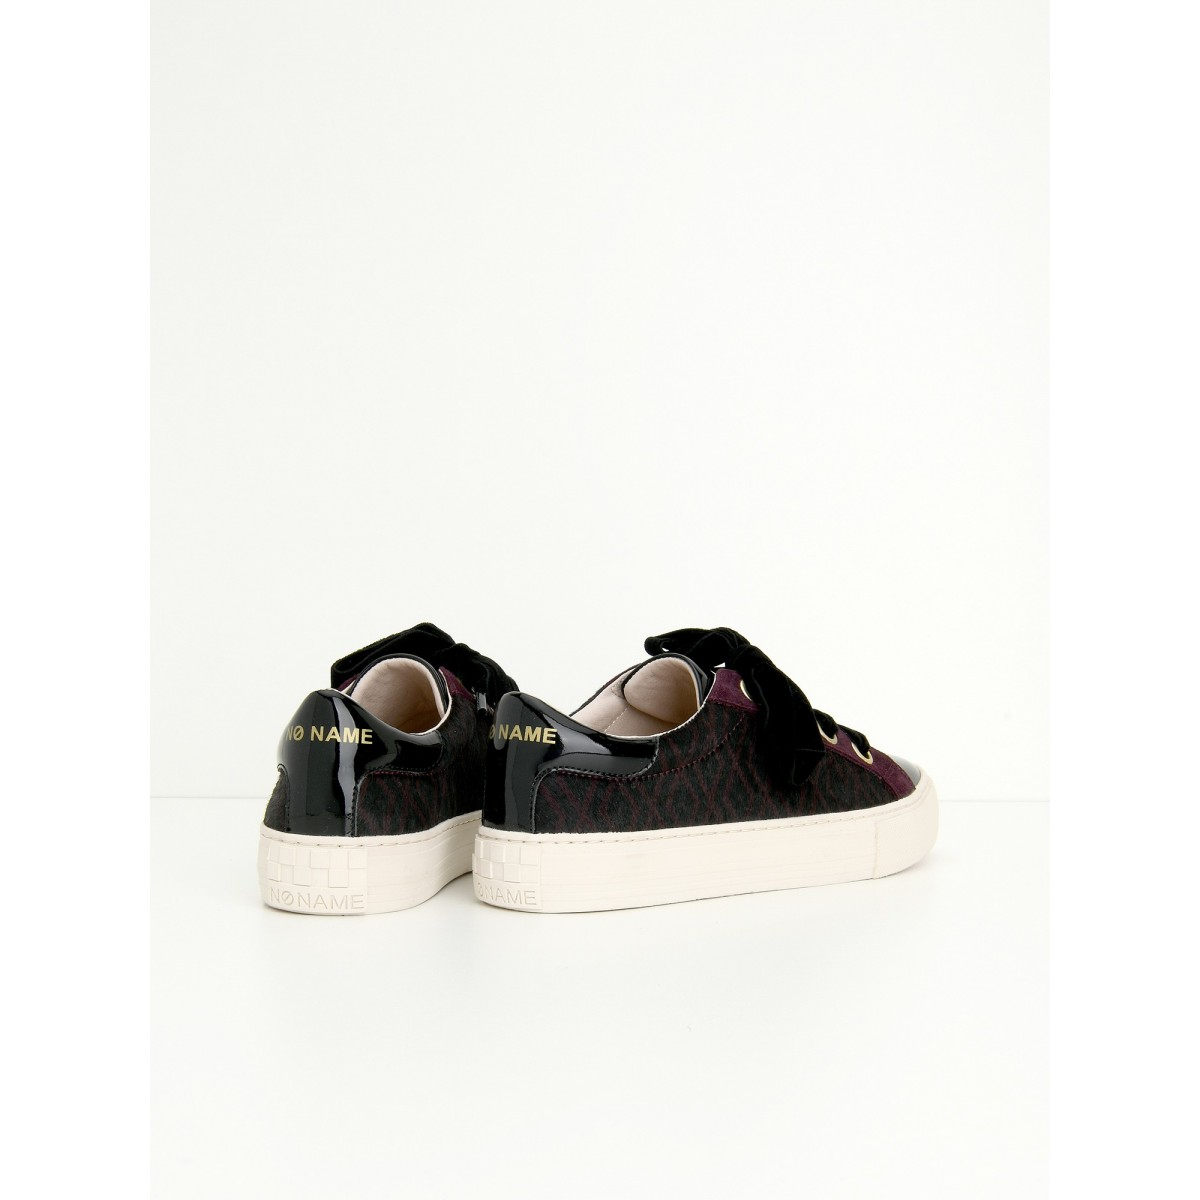 No Name ARCADE NEXT - PATENT/ZOO - BLACK/BURGUNDY